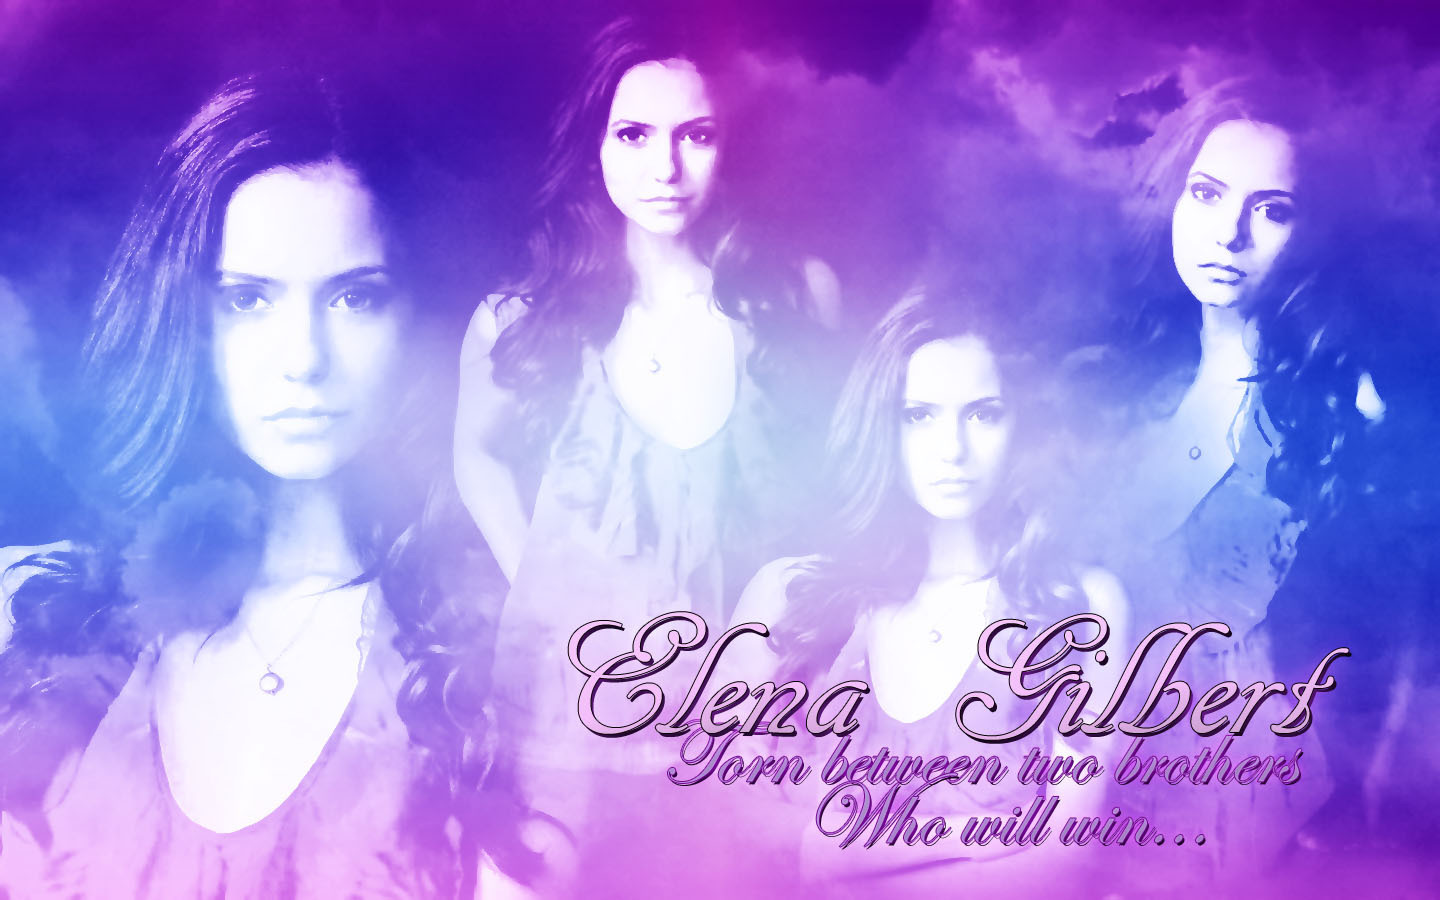 Elena Gilbert - The Vampire Diaries TV Show Wallpaper (11214736